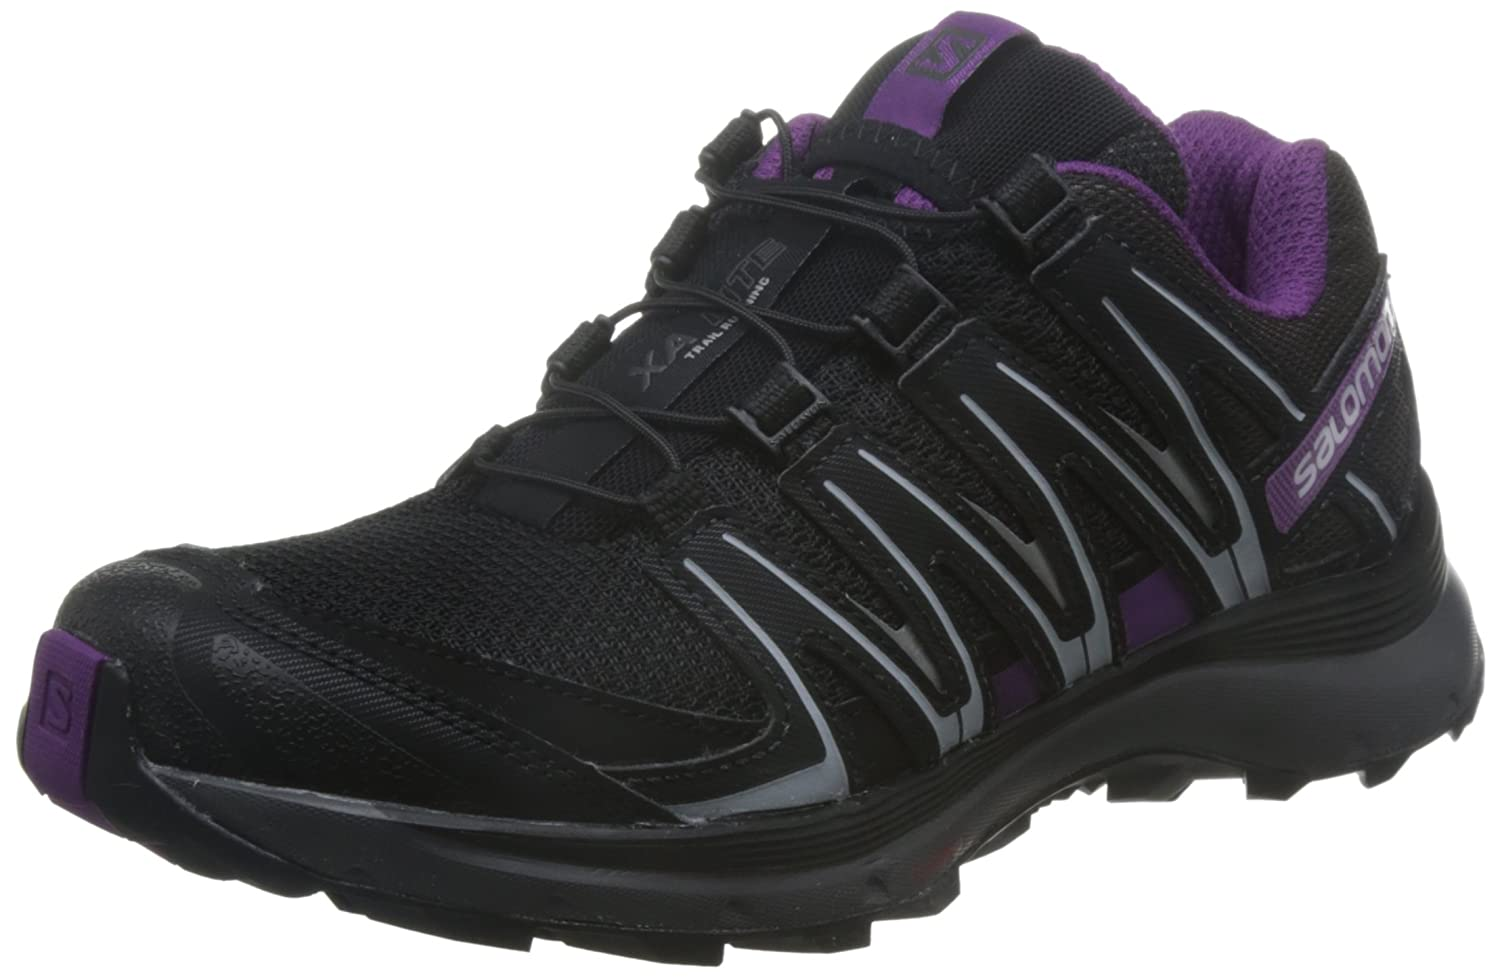 Salomon Xa Lite Damen Traillaufschuhe, Black/Magnet/Grape Juice, 45 1/3 EU